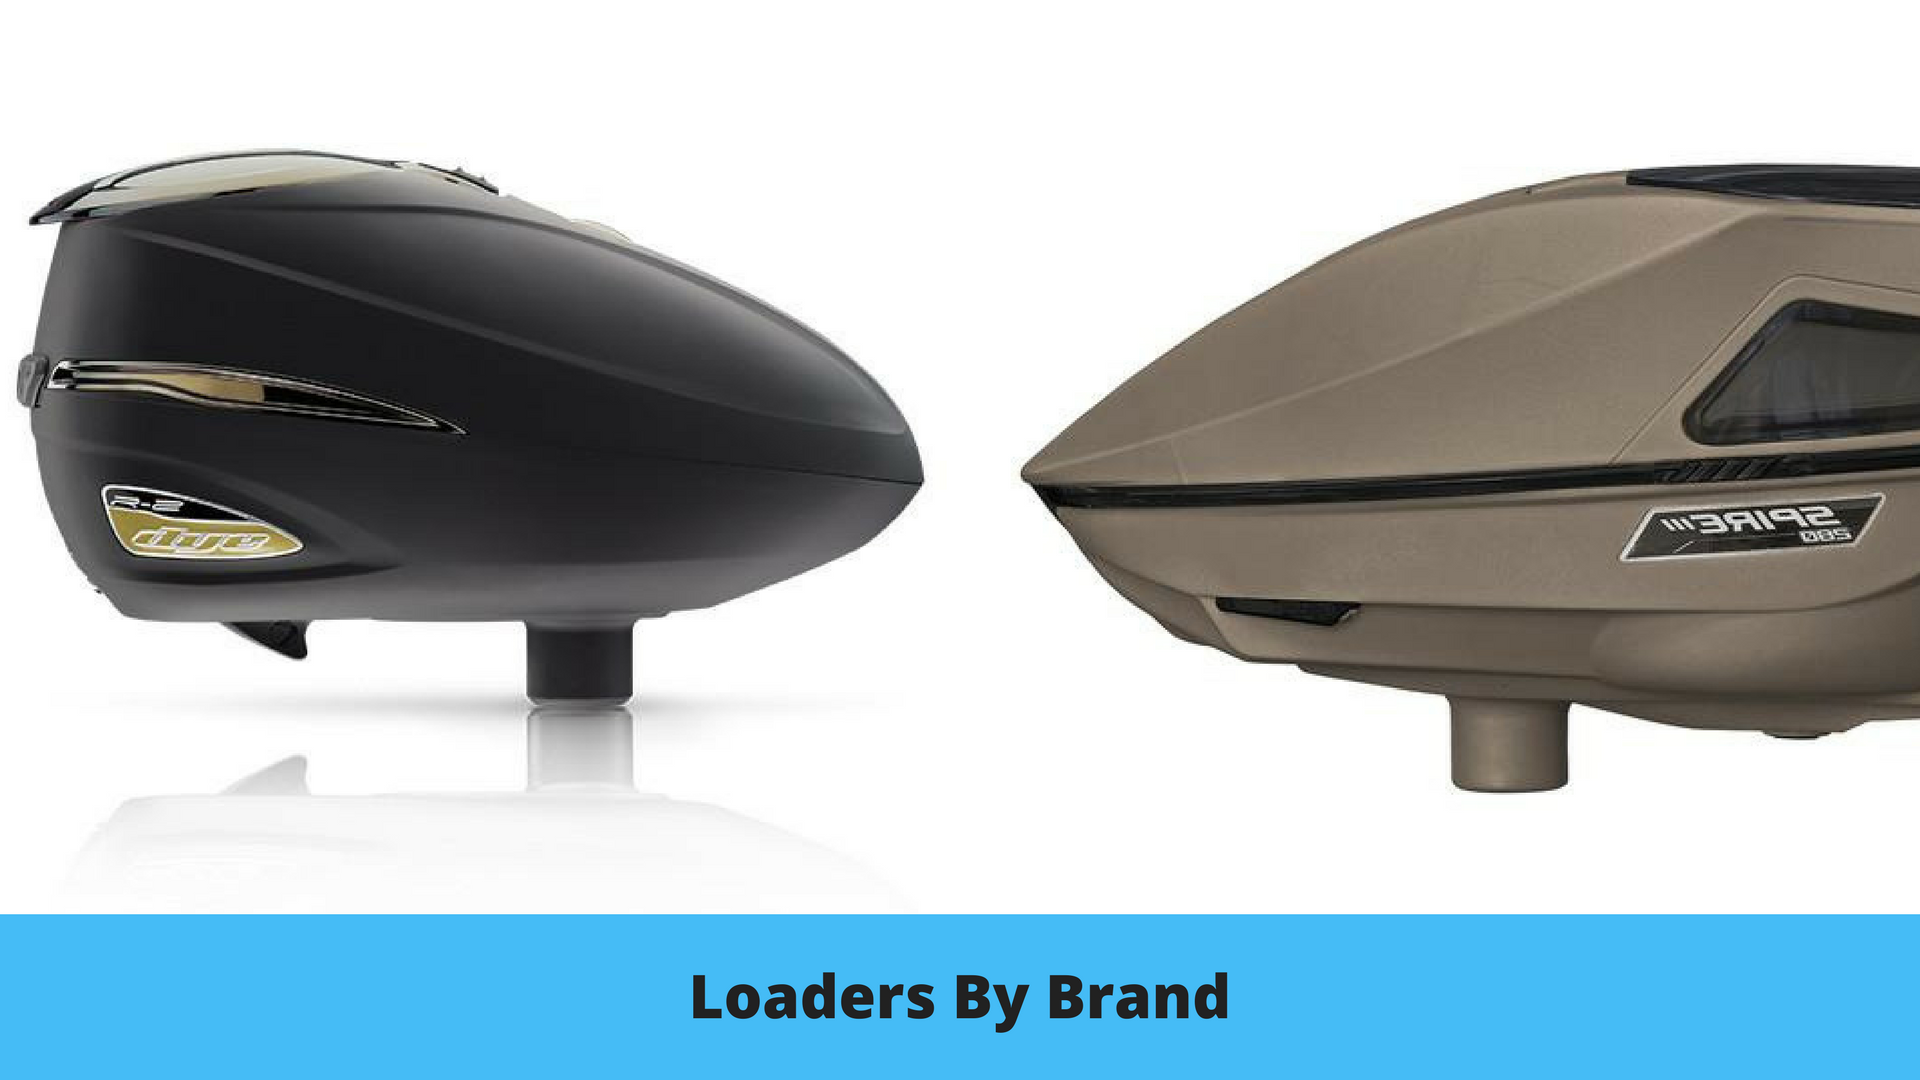 Loaders by Brand